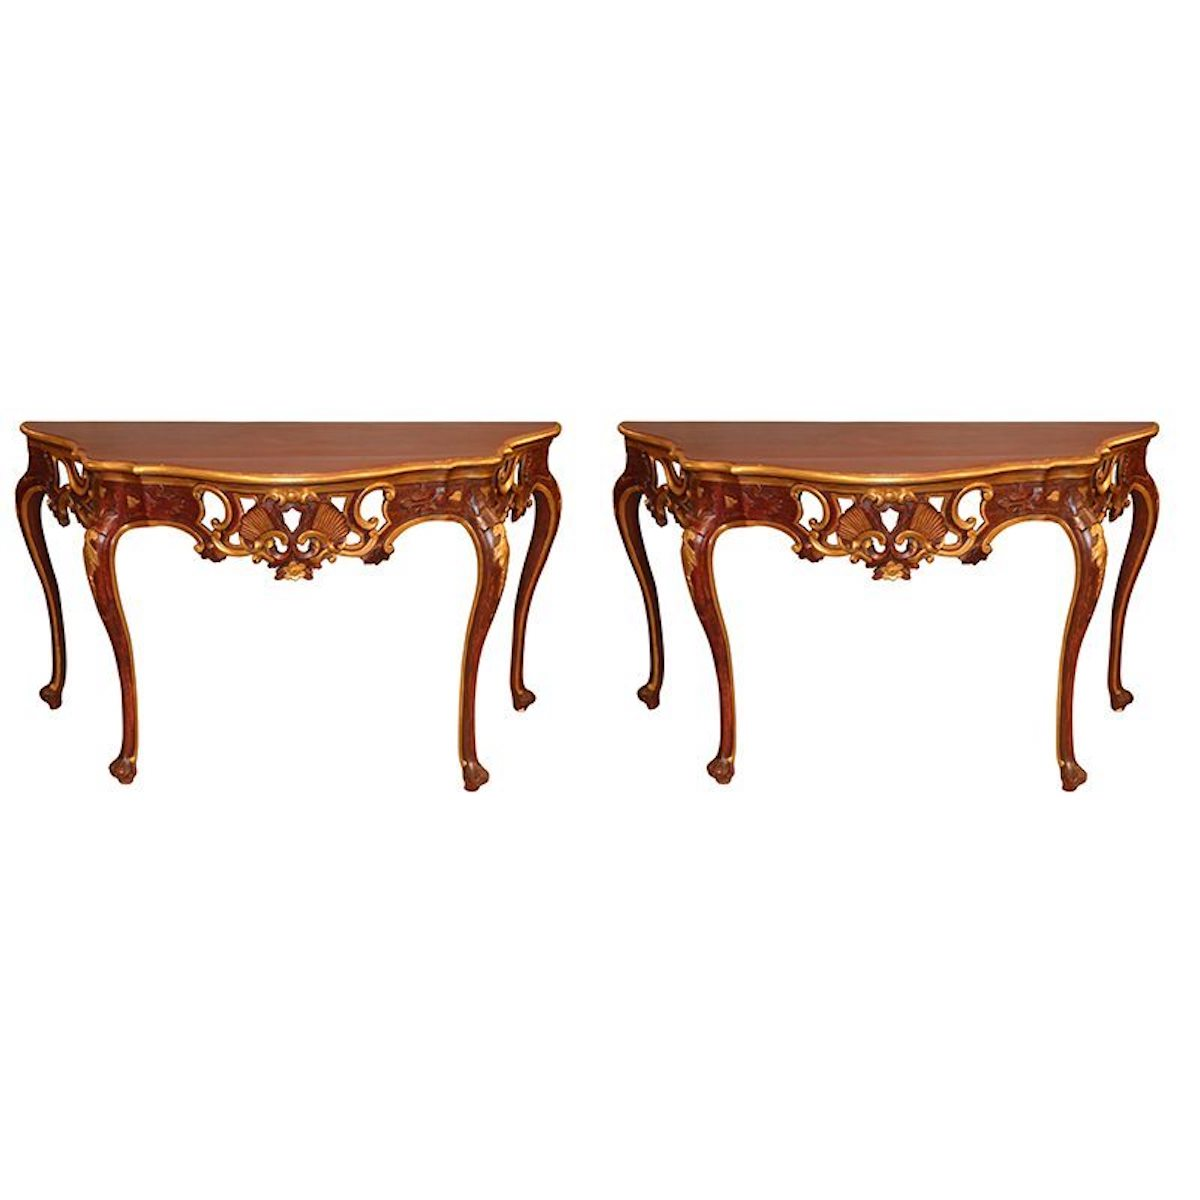 19th Century Antique Pair of Painted and Giltwood Italian Console Tables